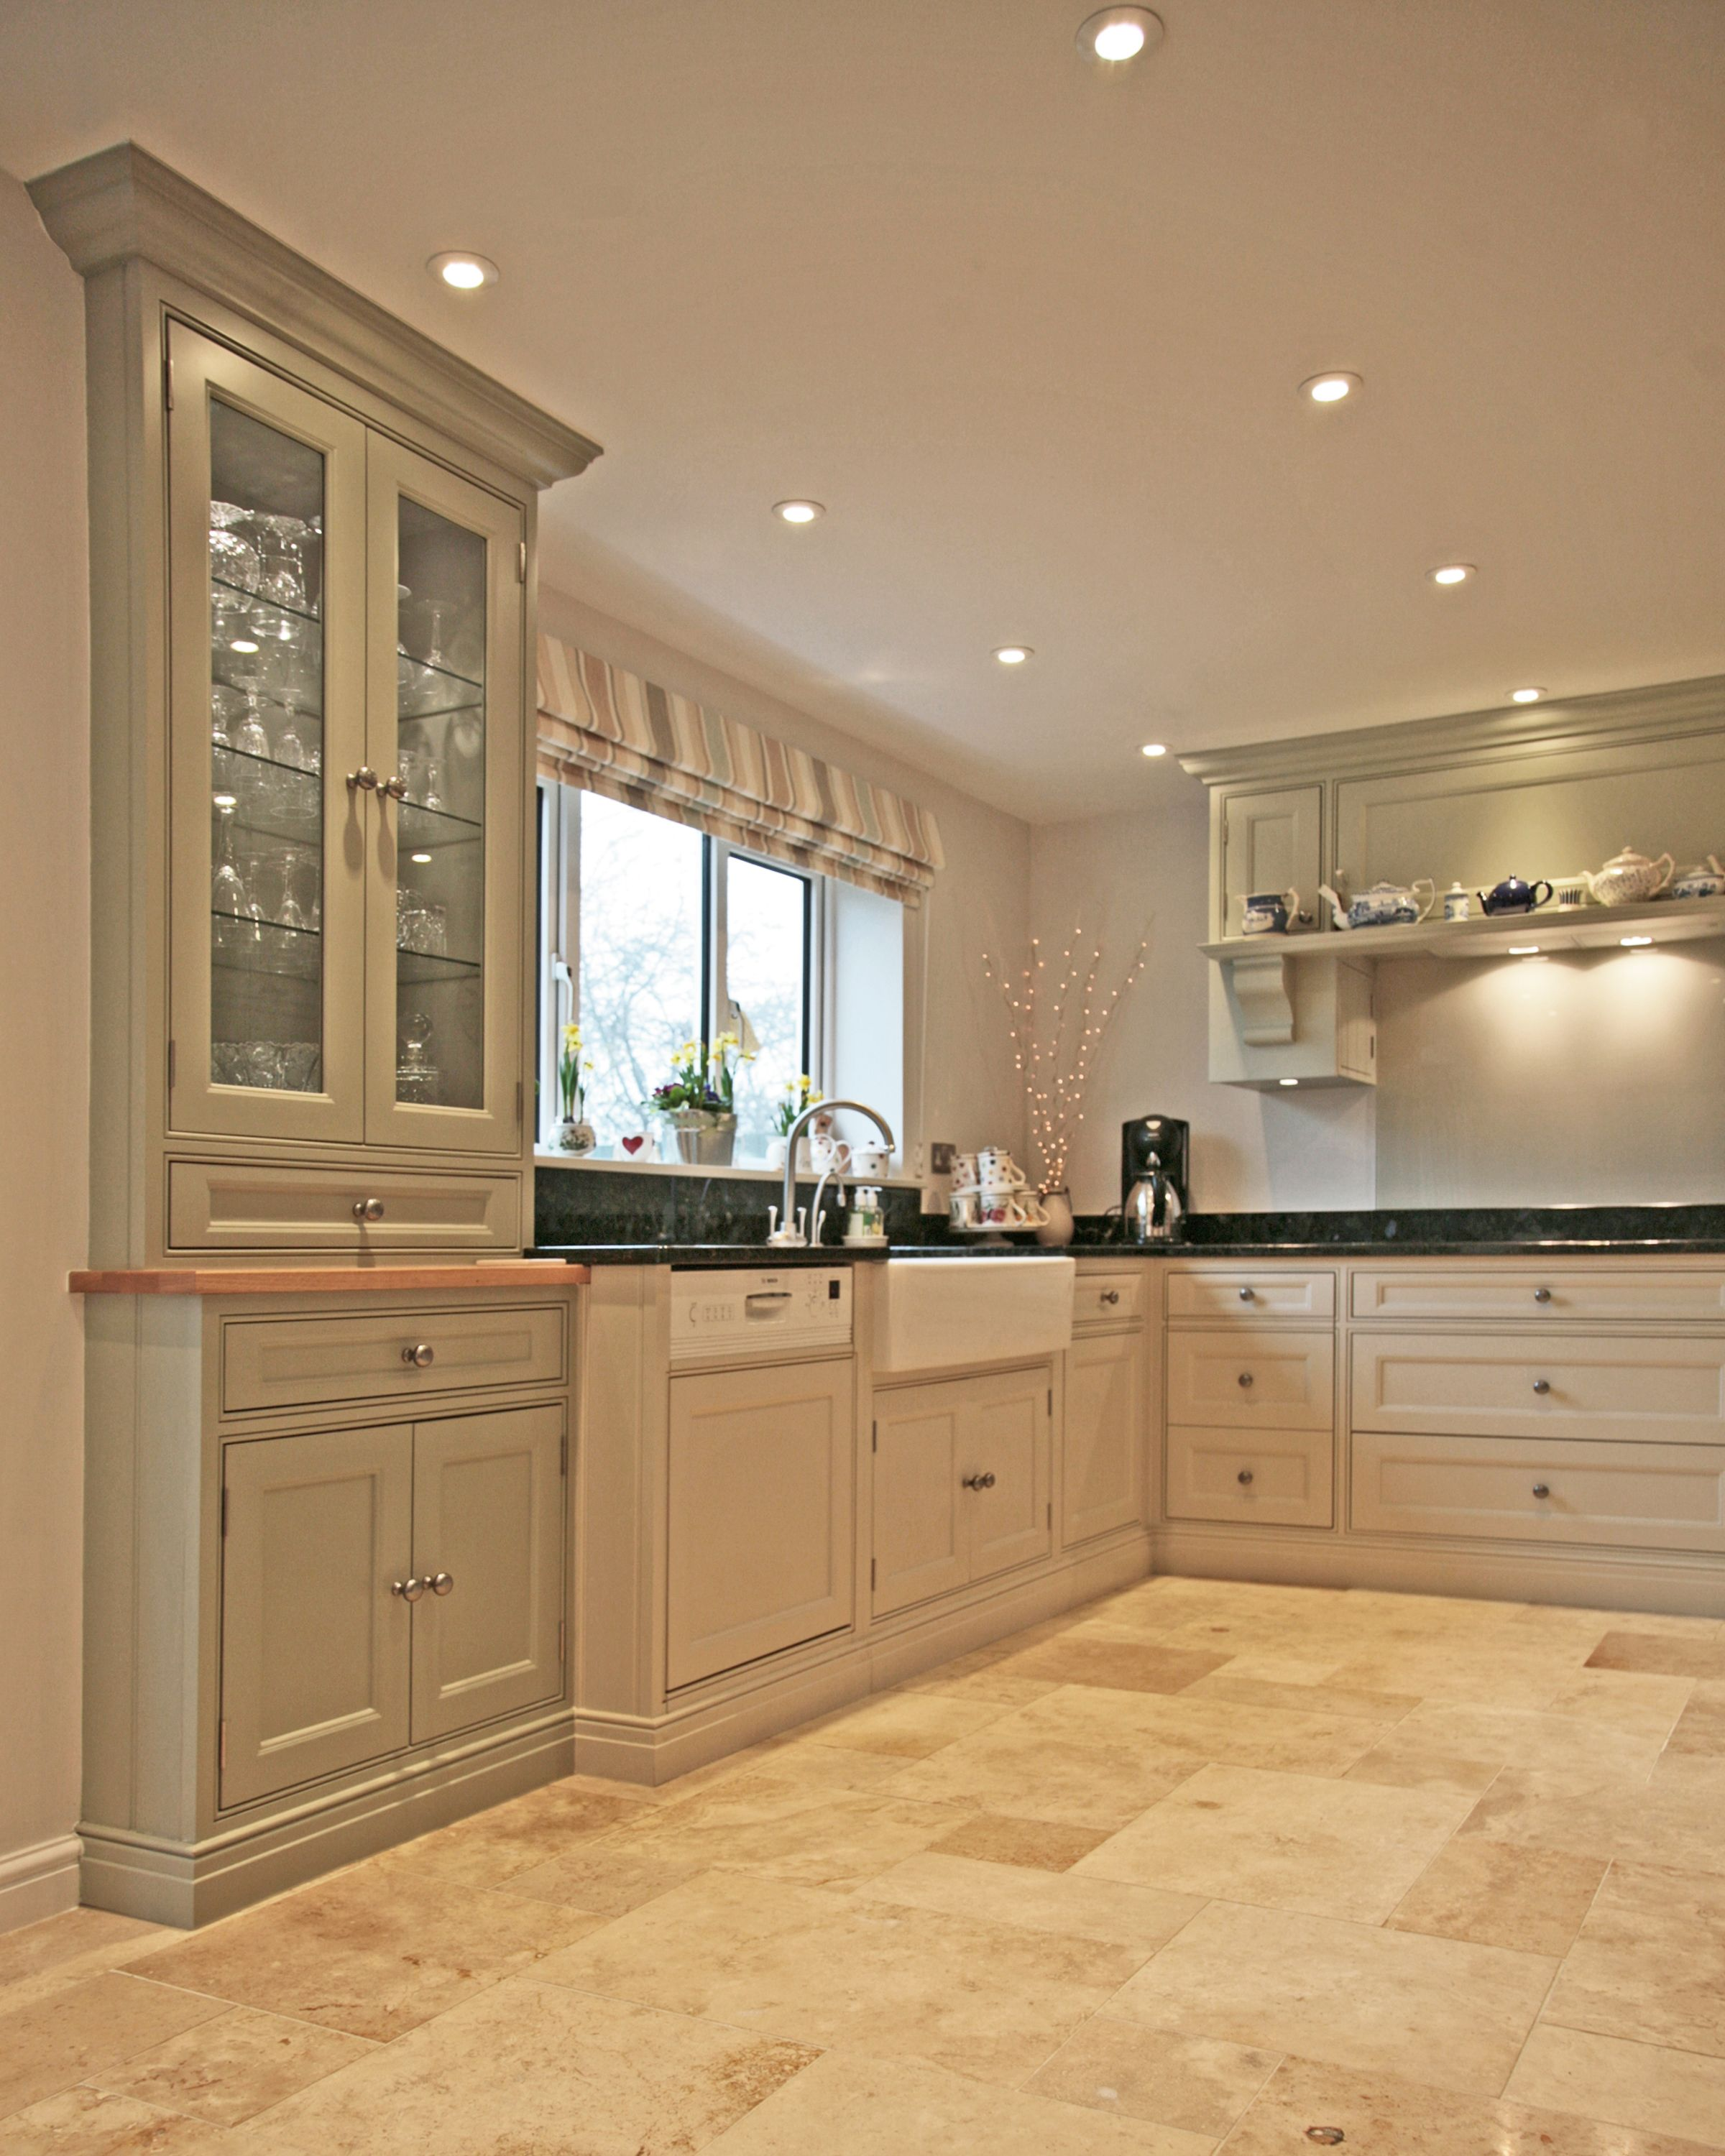 Create a focal point in your kitchen with a tall unit, specially